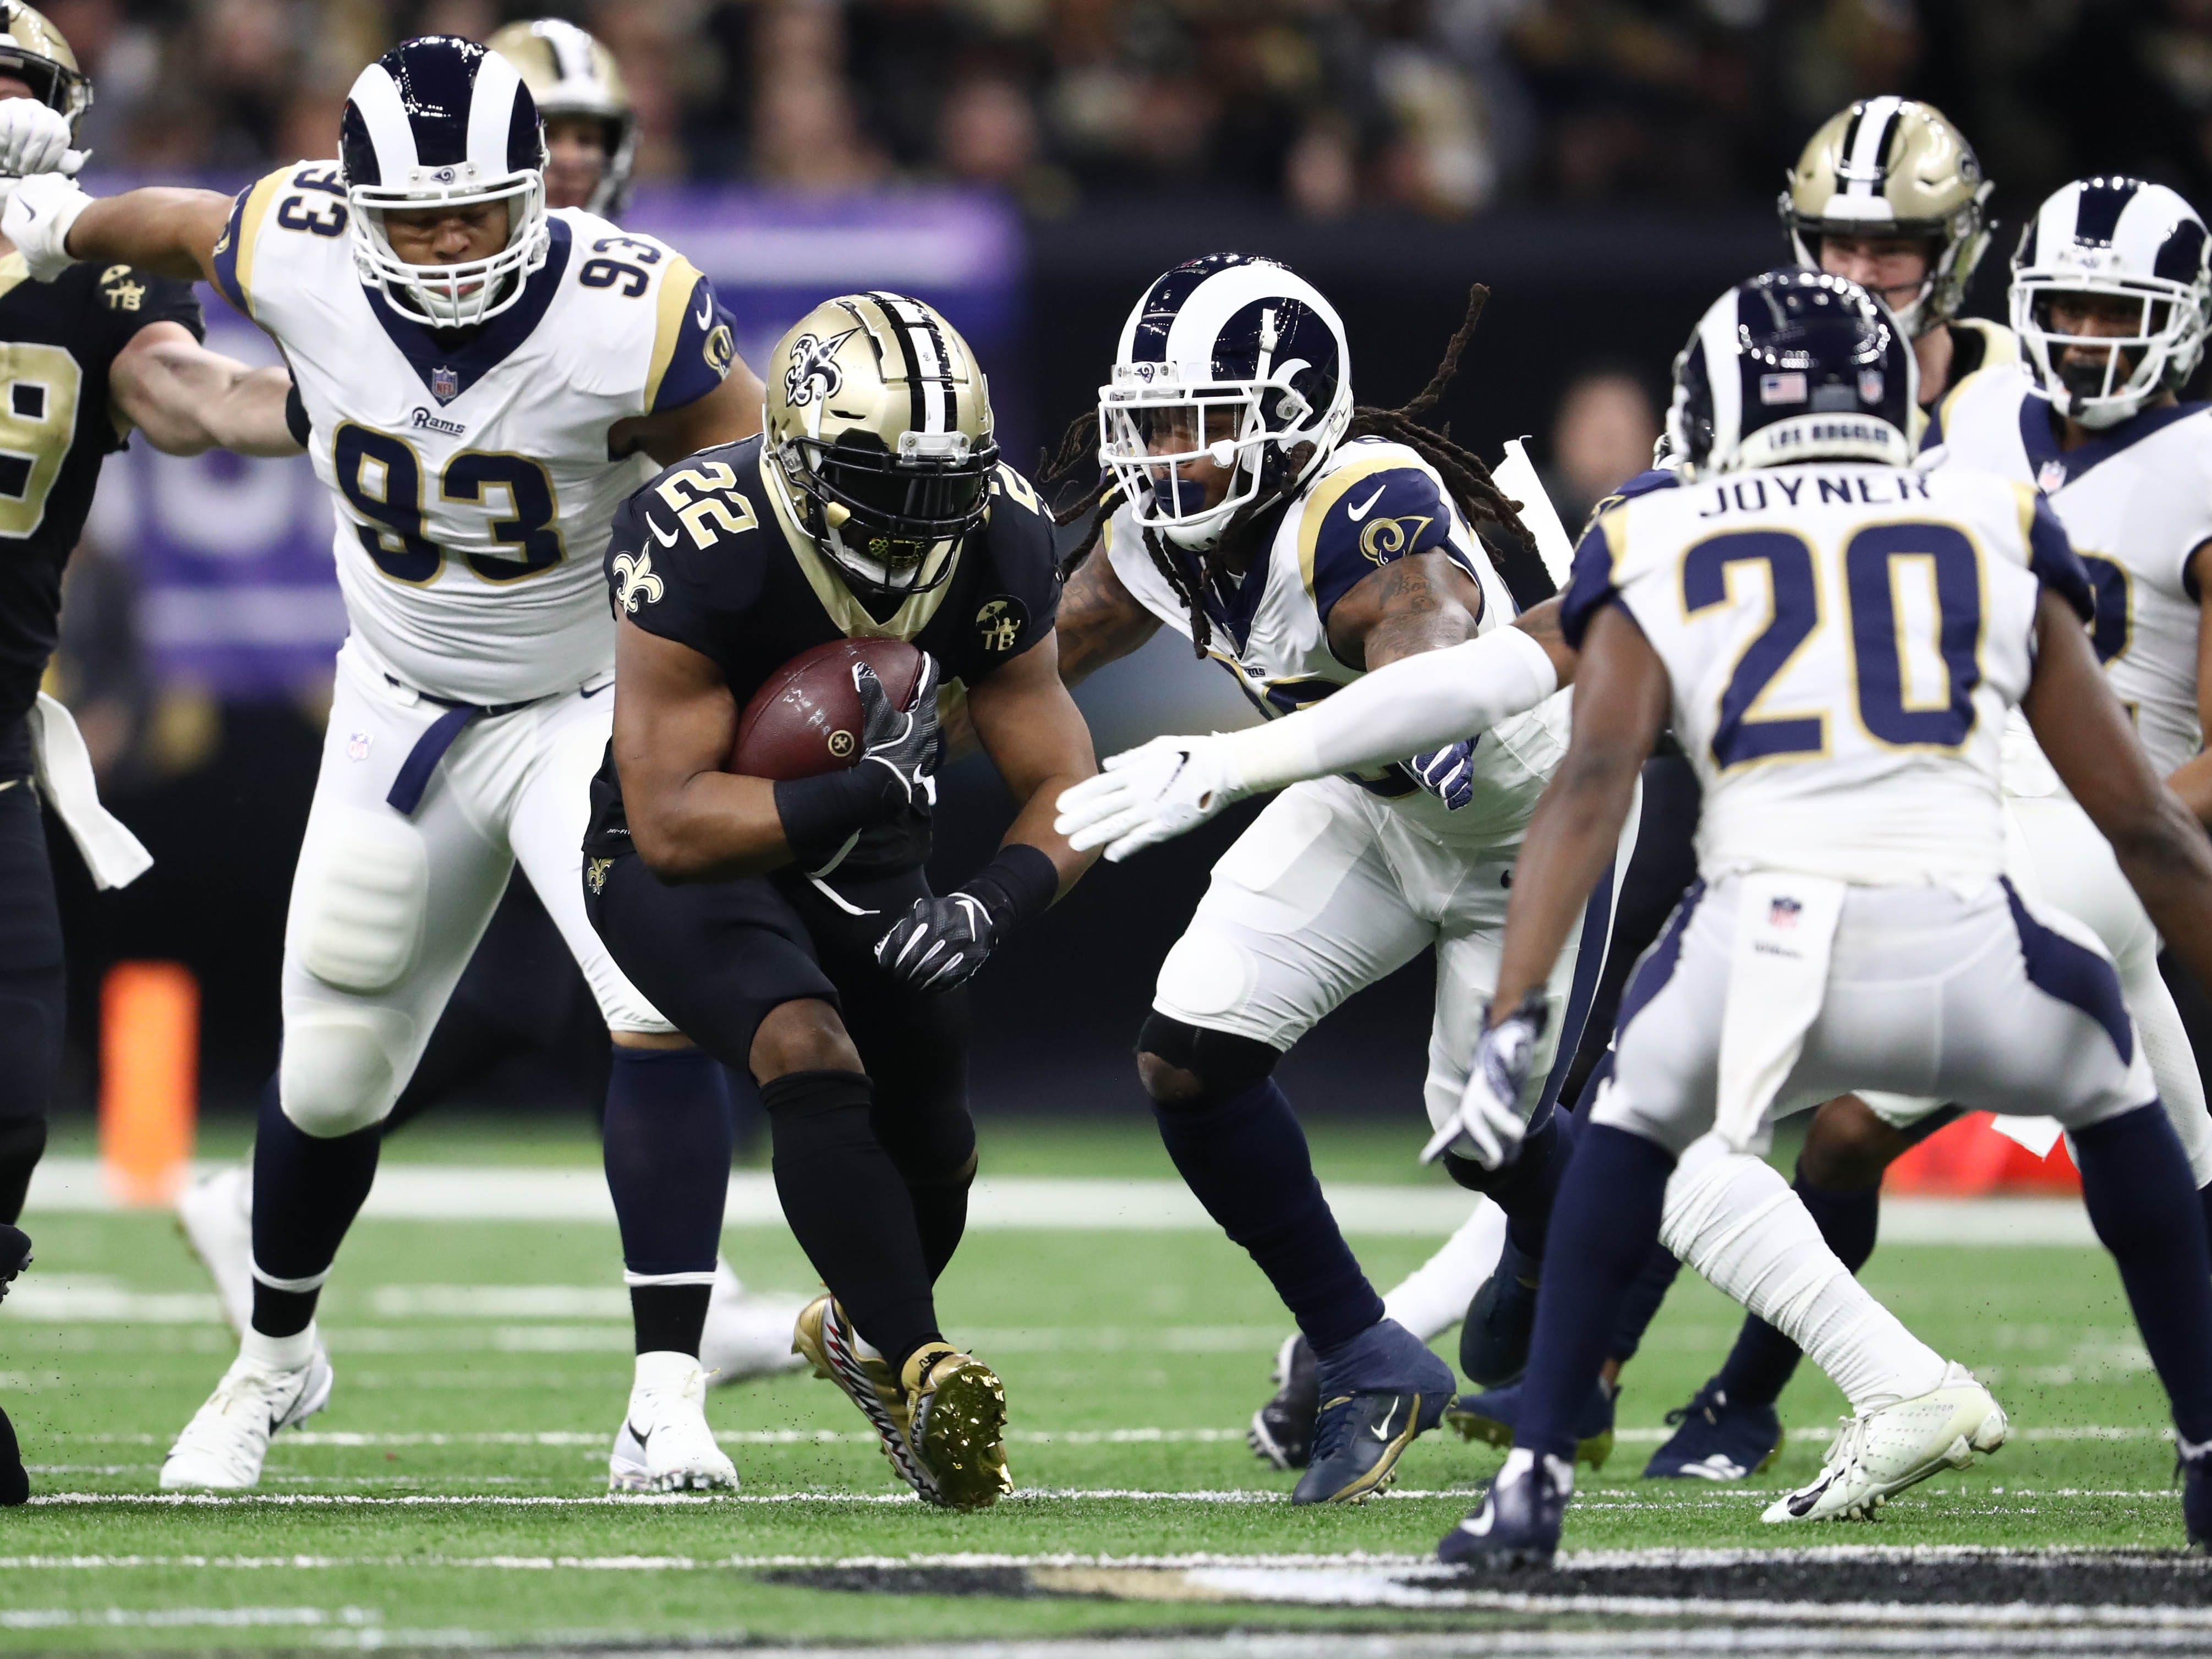 New Orleans Saints running back Mark Ingram (22) runs the ball against the Los Angeles Rams during the first quarter in the NFC Championship game at Mercedes-Benz Superdome.